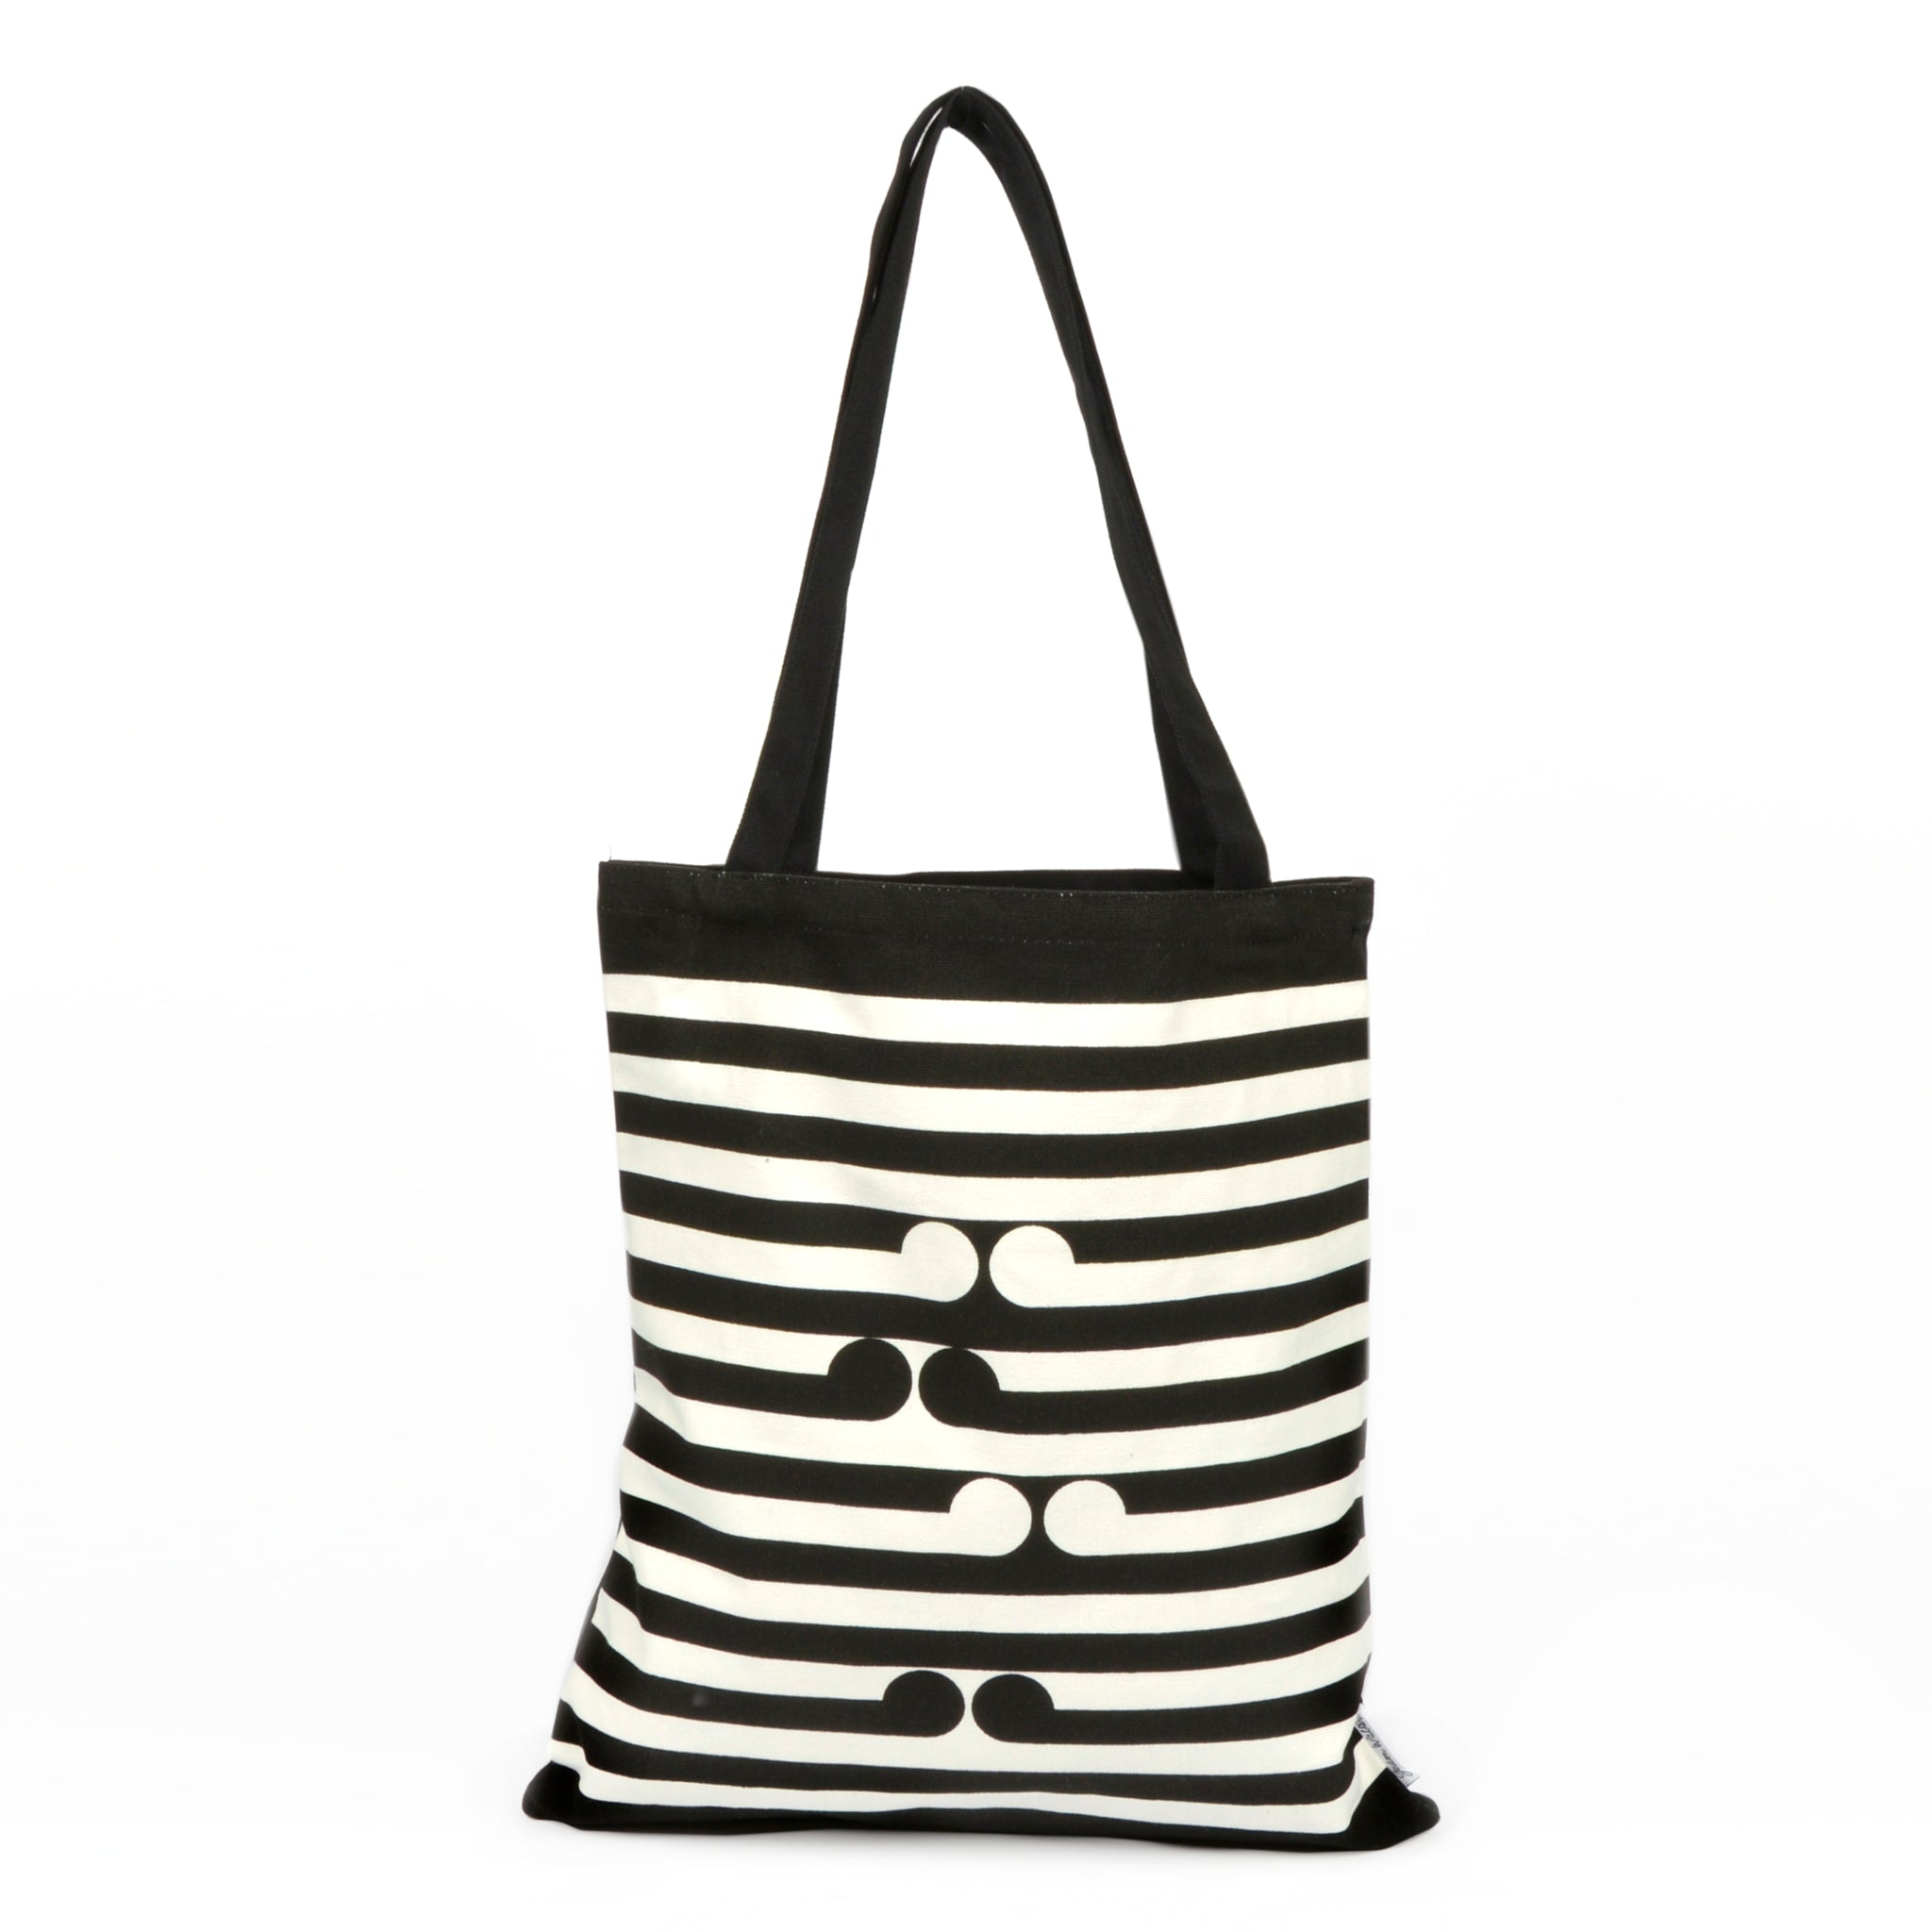 Untitled no. 1 Tote Bag Image